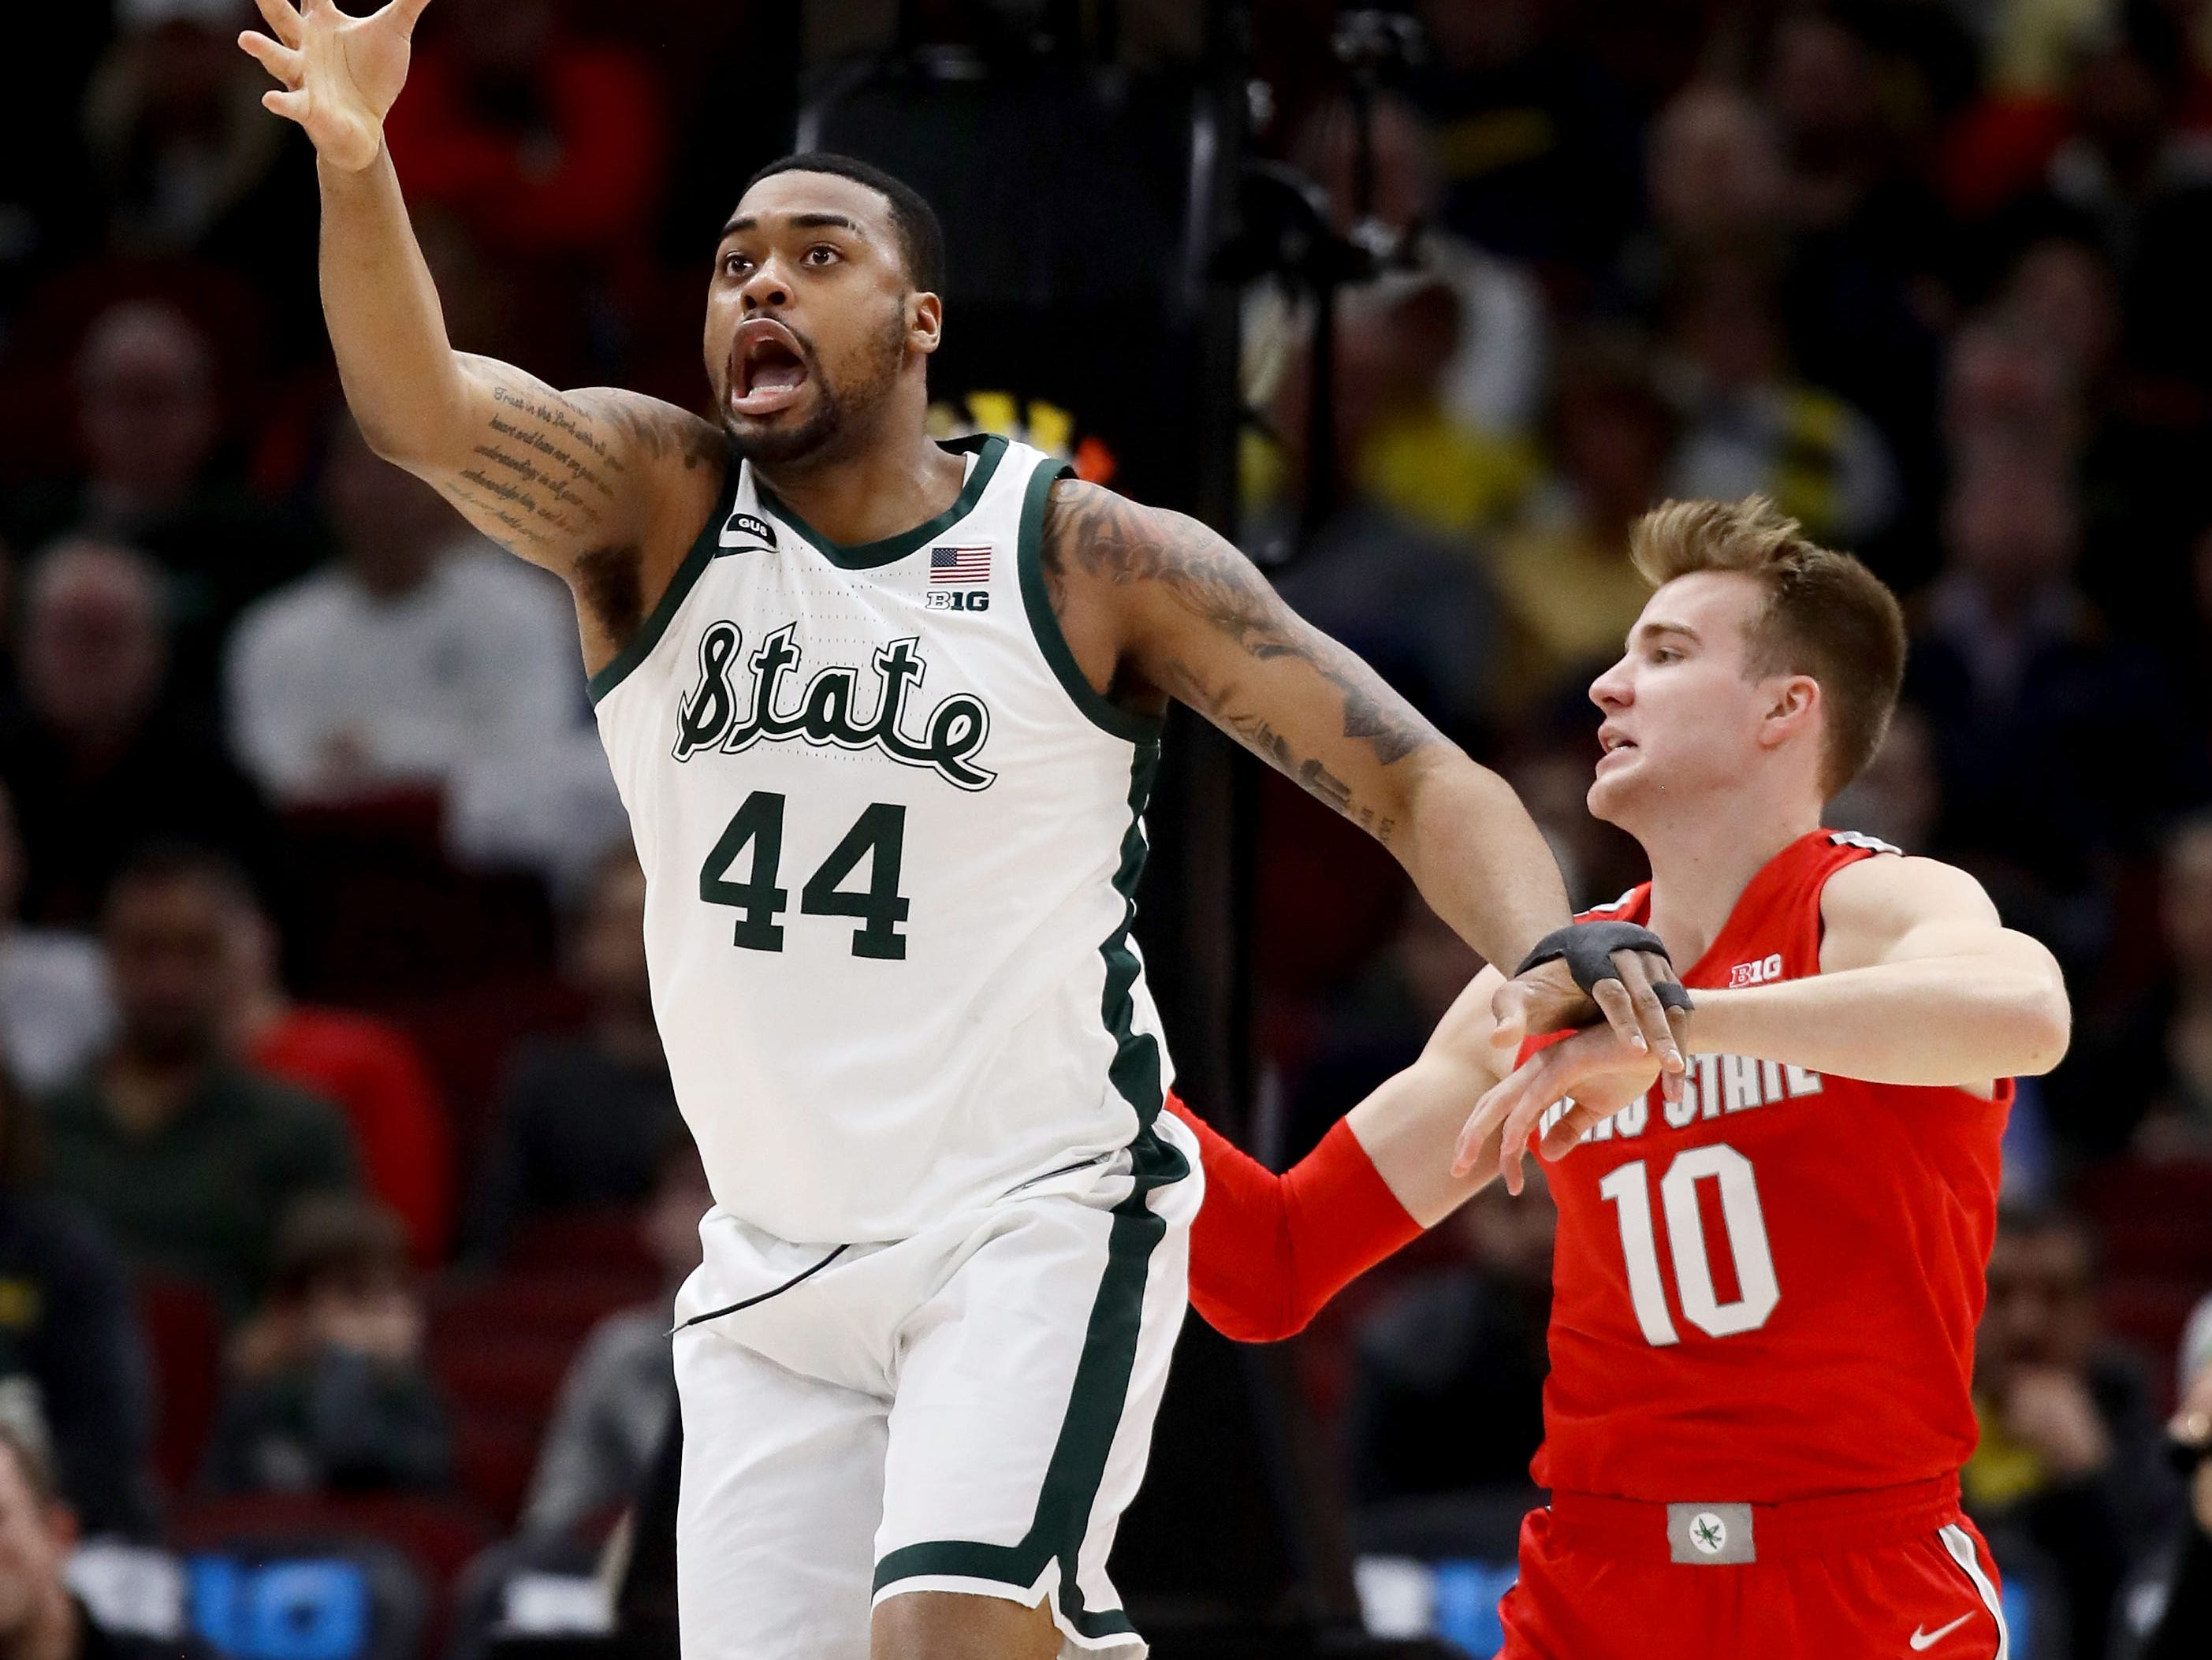 Nick Ward #44 of the Michigan State Spartans reaches for the ball while being guarded by Justin Ahrens #10 of the Ohio State Buckeyes in the first half during the quarterfinals of the Big Ten Basketball Tournament at the United Center on March 15, 2019 in Chicago, Illinois.